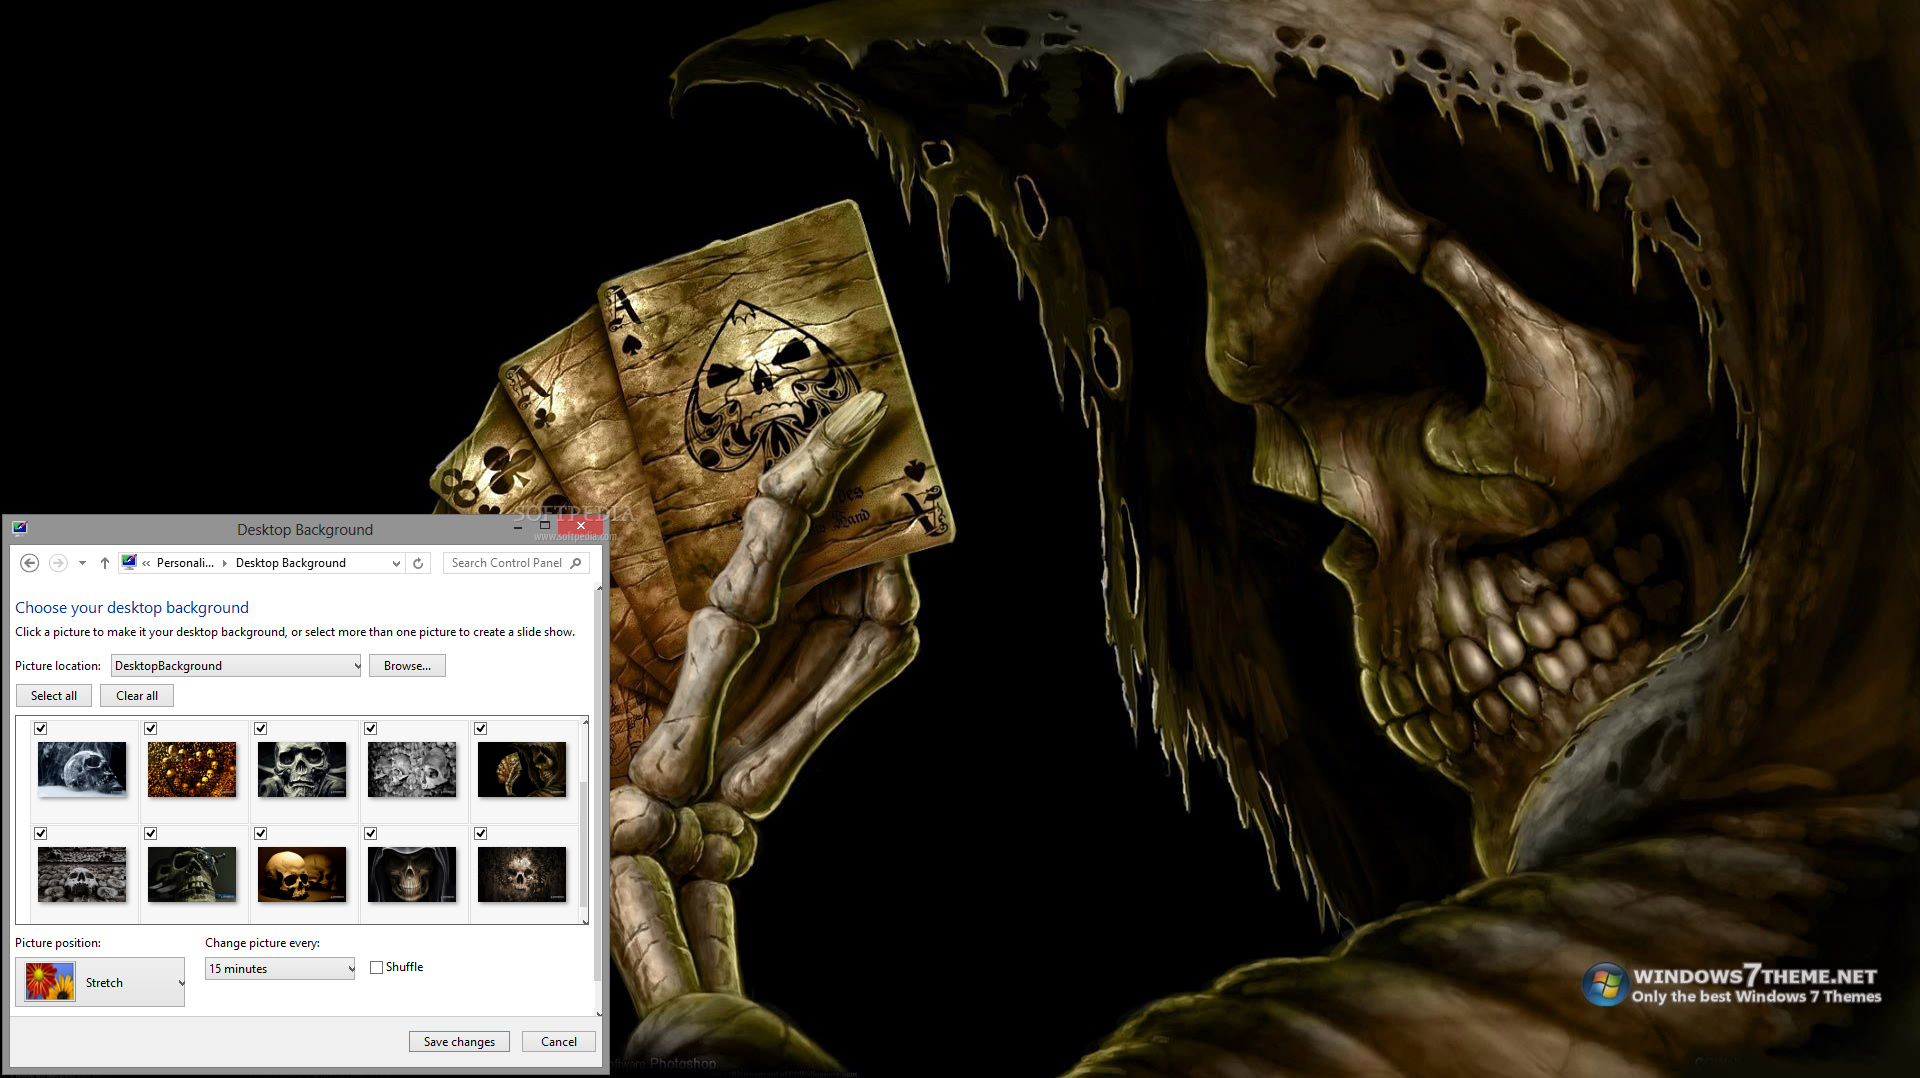 skull wallpaper for windows 7 - photo #23